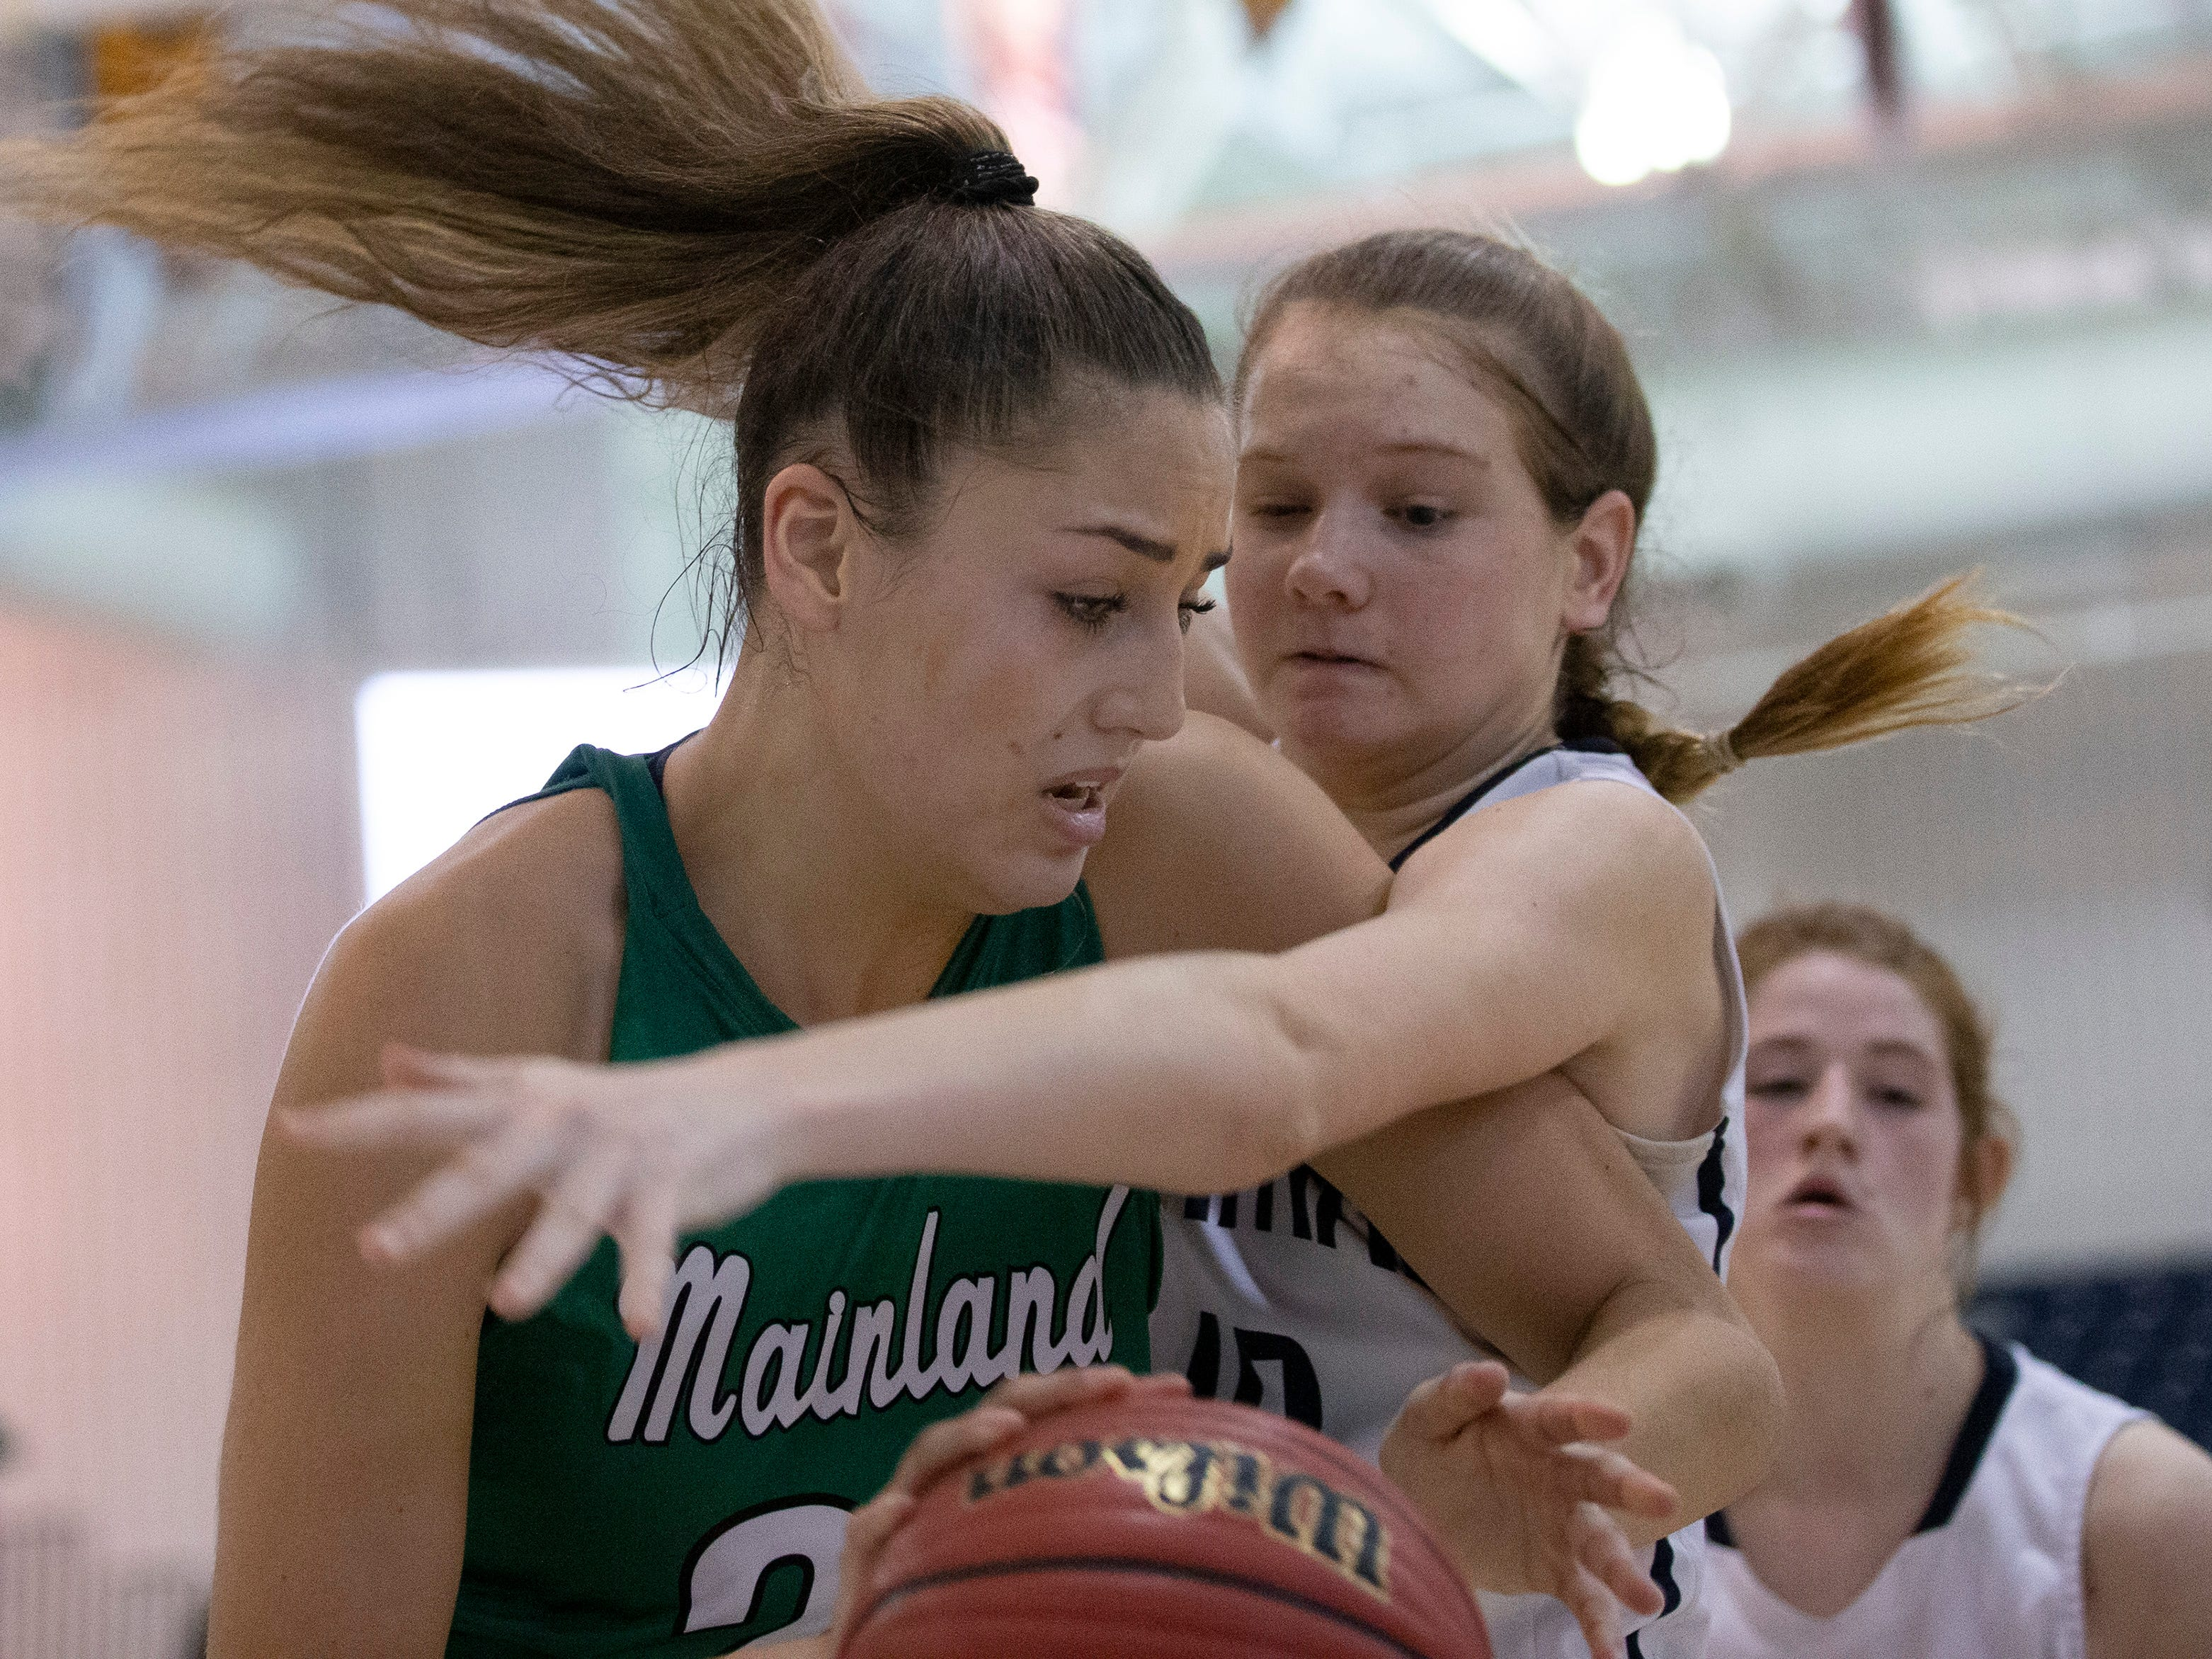 Chatham Girls Basketball vs Mainland in Girls Group III Final in Toms River on March 10, 2019.